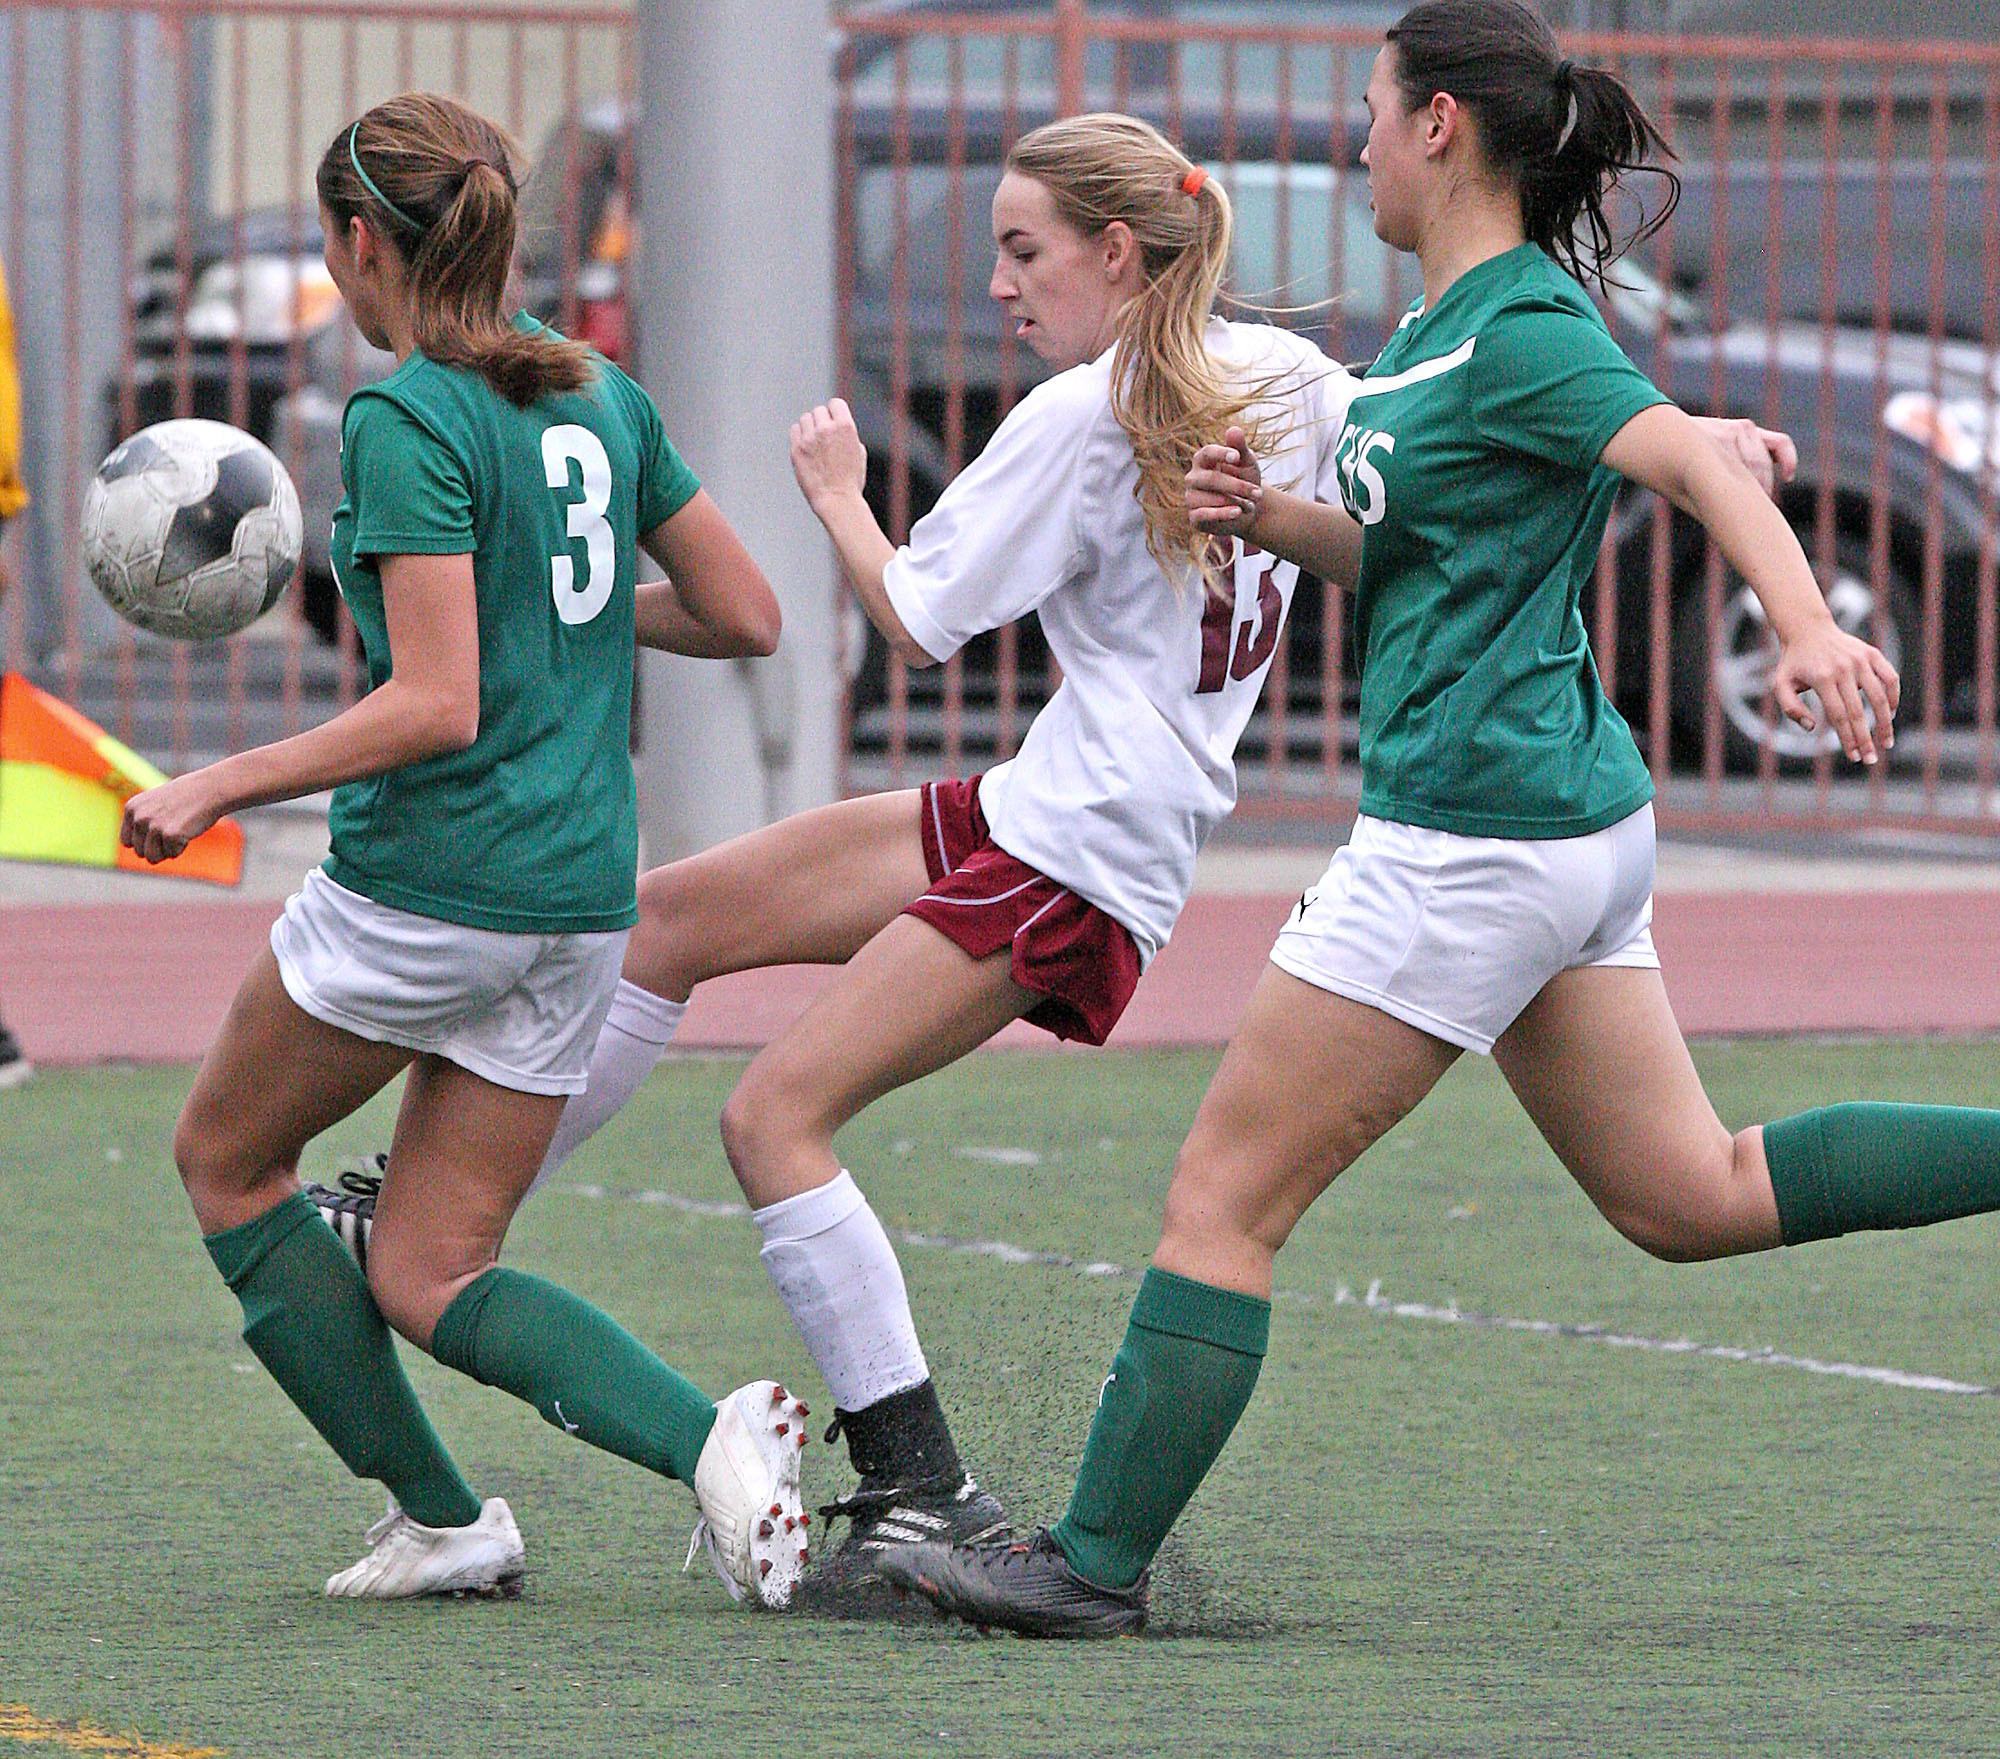 La Canada's Katherine Sheehy makes a goal attempt with Temple City's Alexxis Molinar and Sara Kubo defending during a match at La Cañada High on Friday, January 24, 2014.